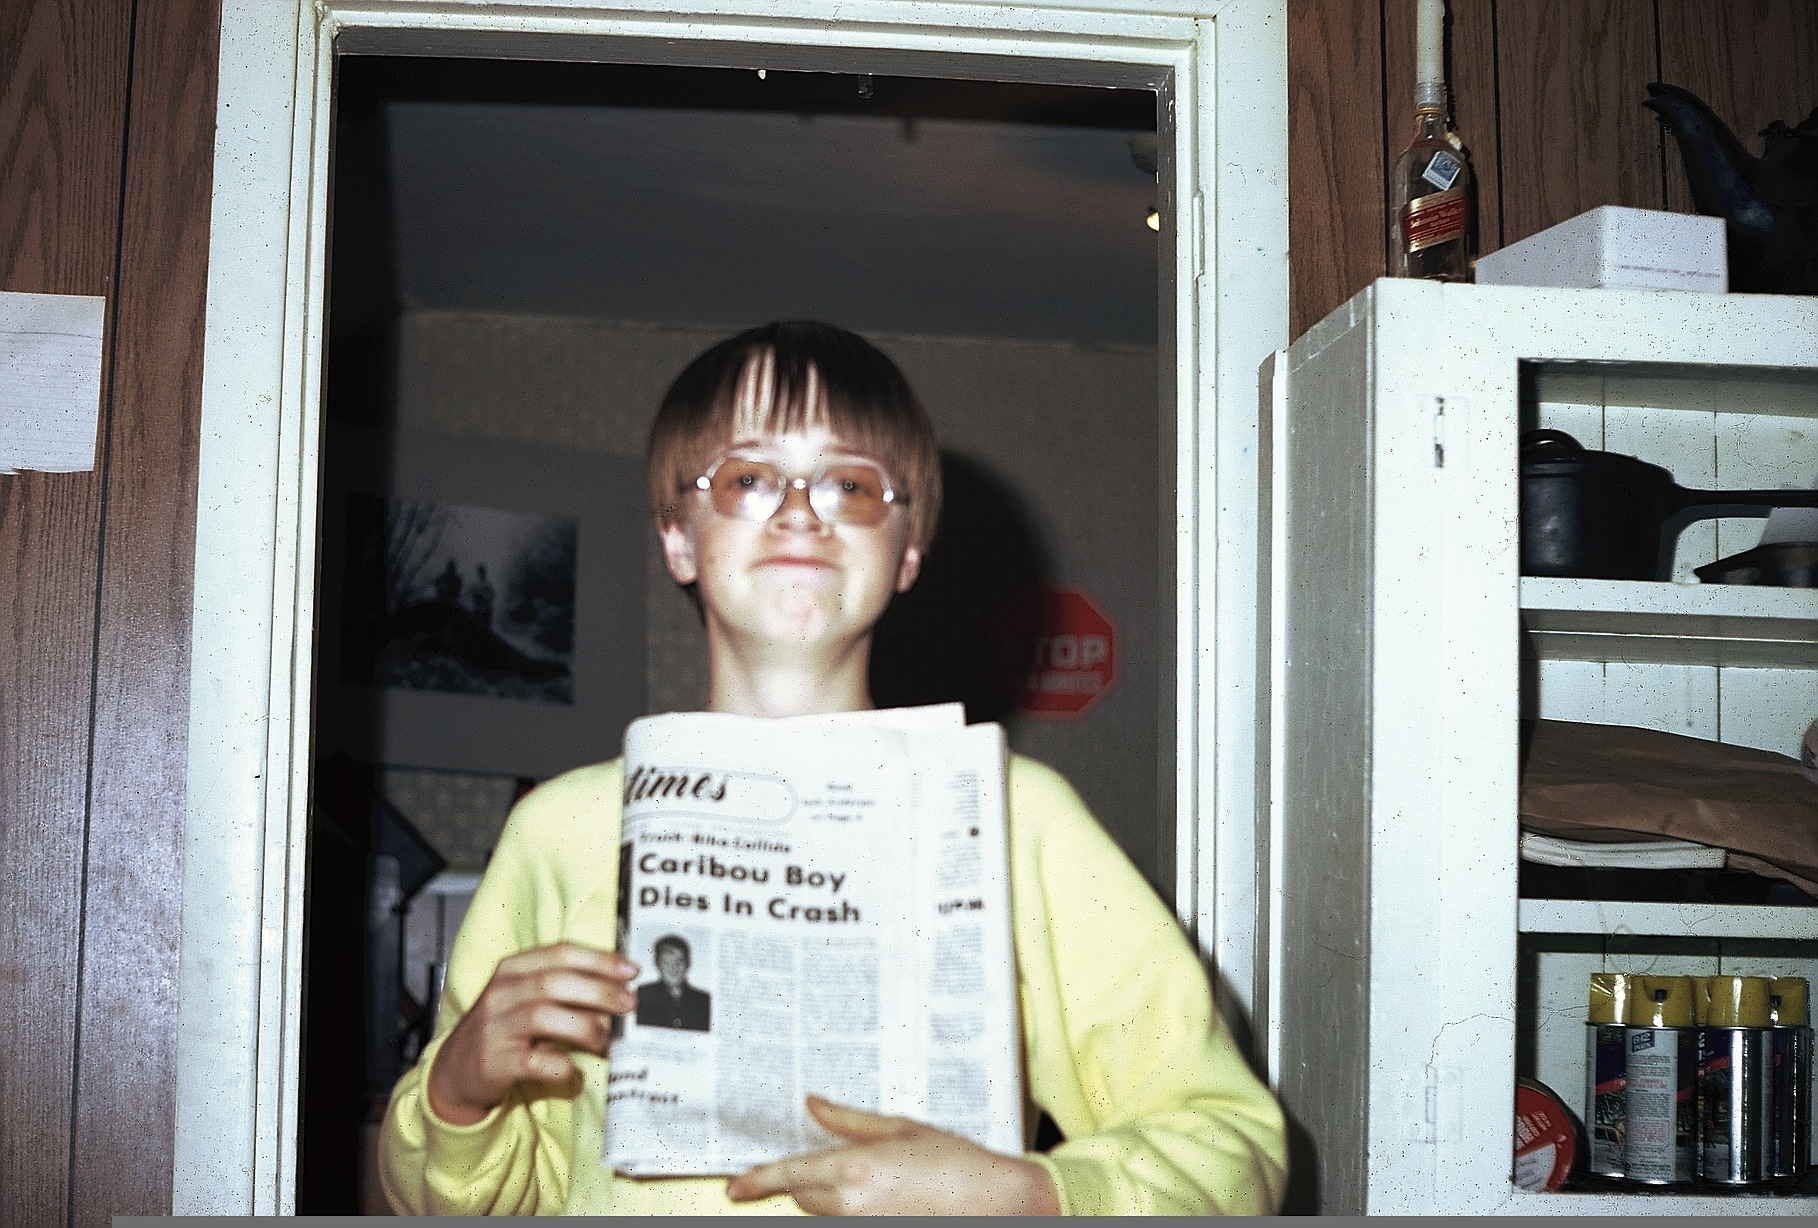 12 year old Joe Wilcox and news of friend's death